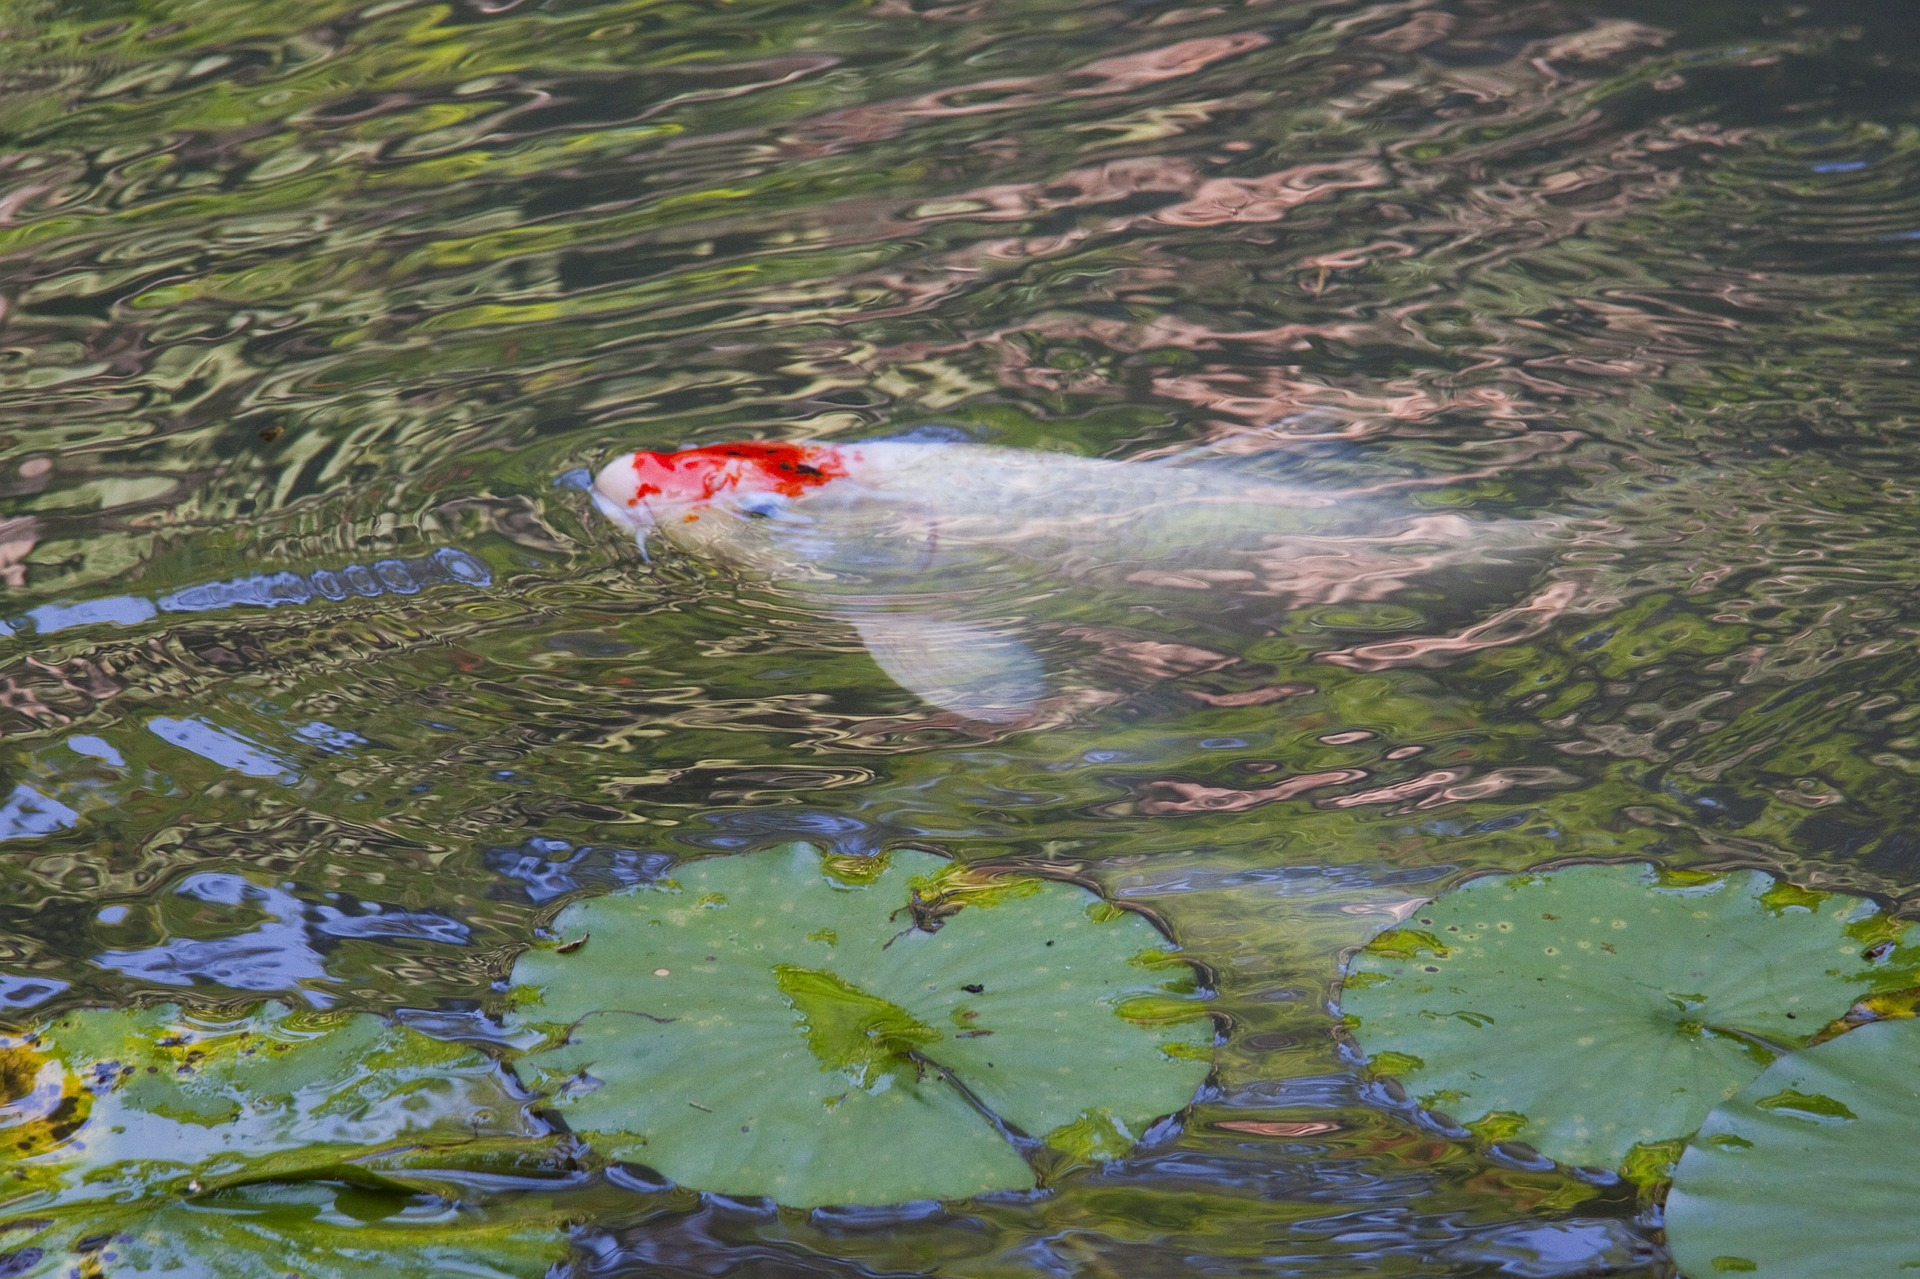 Backyard aquaculture raise fish for profit worldwide for Koi pond temperature